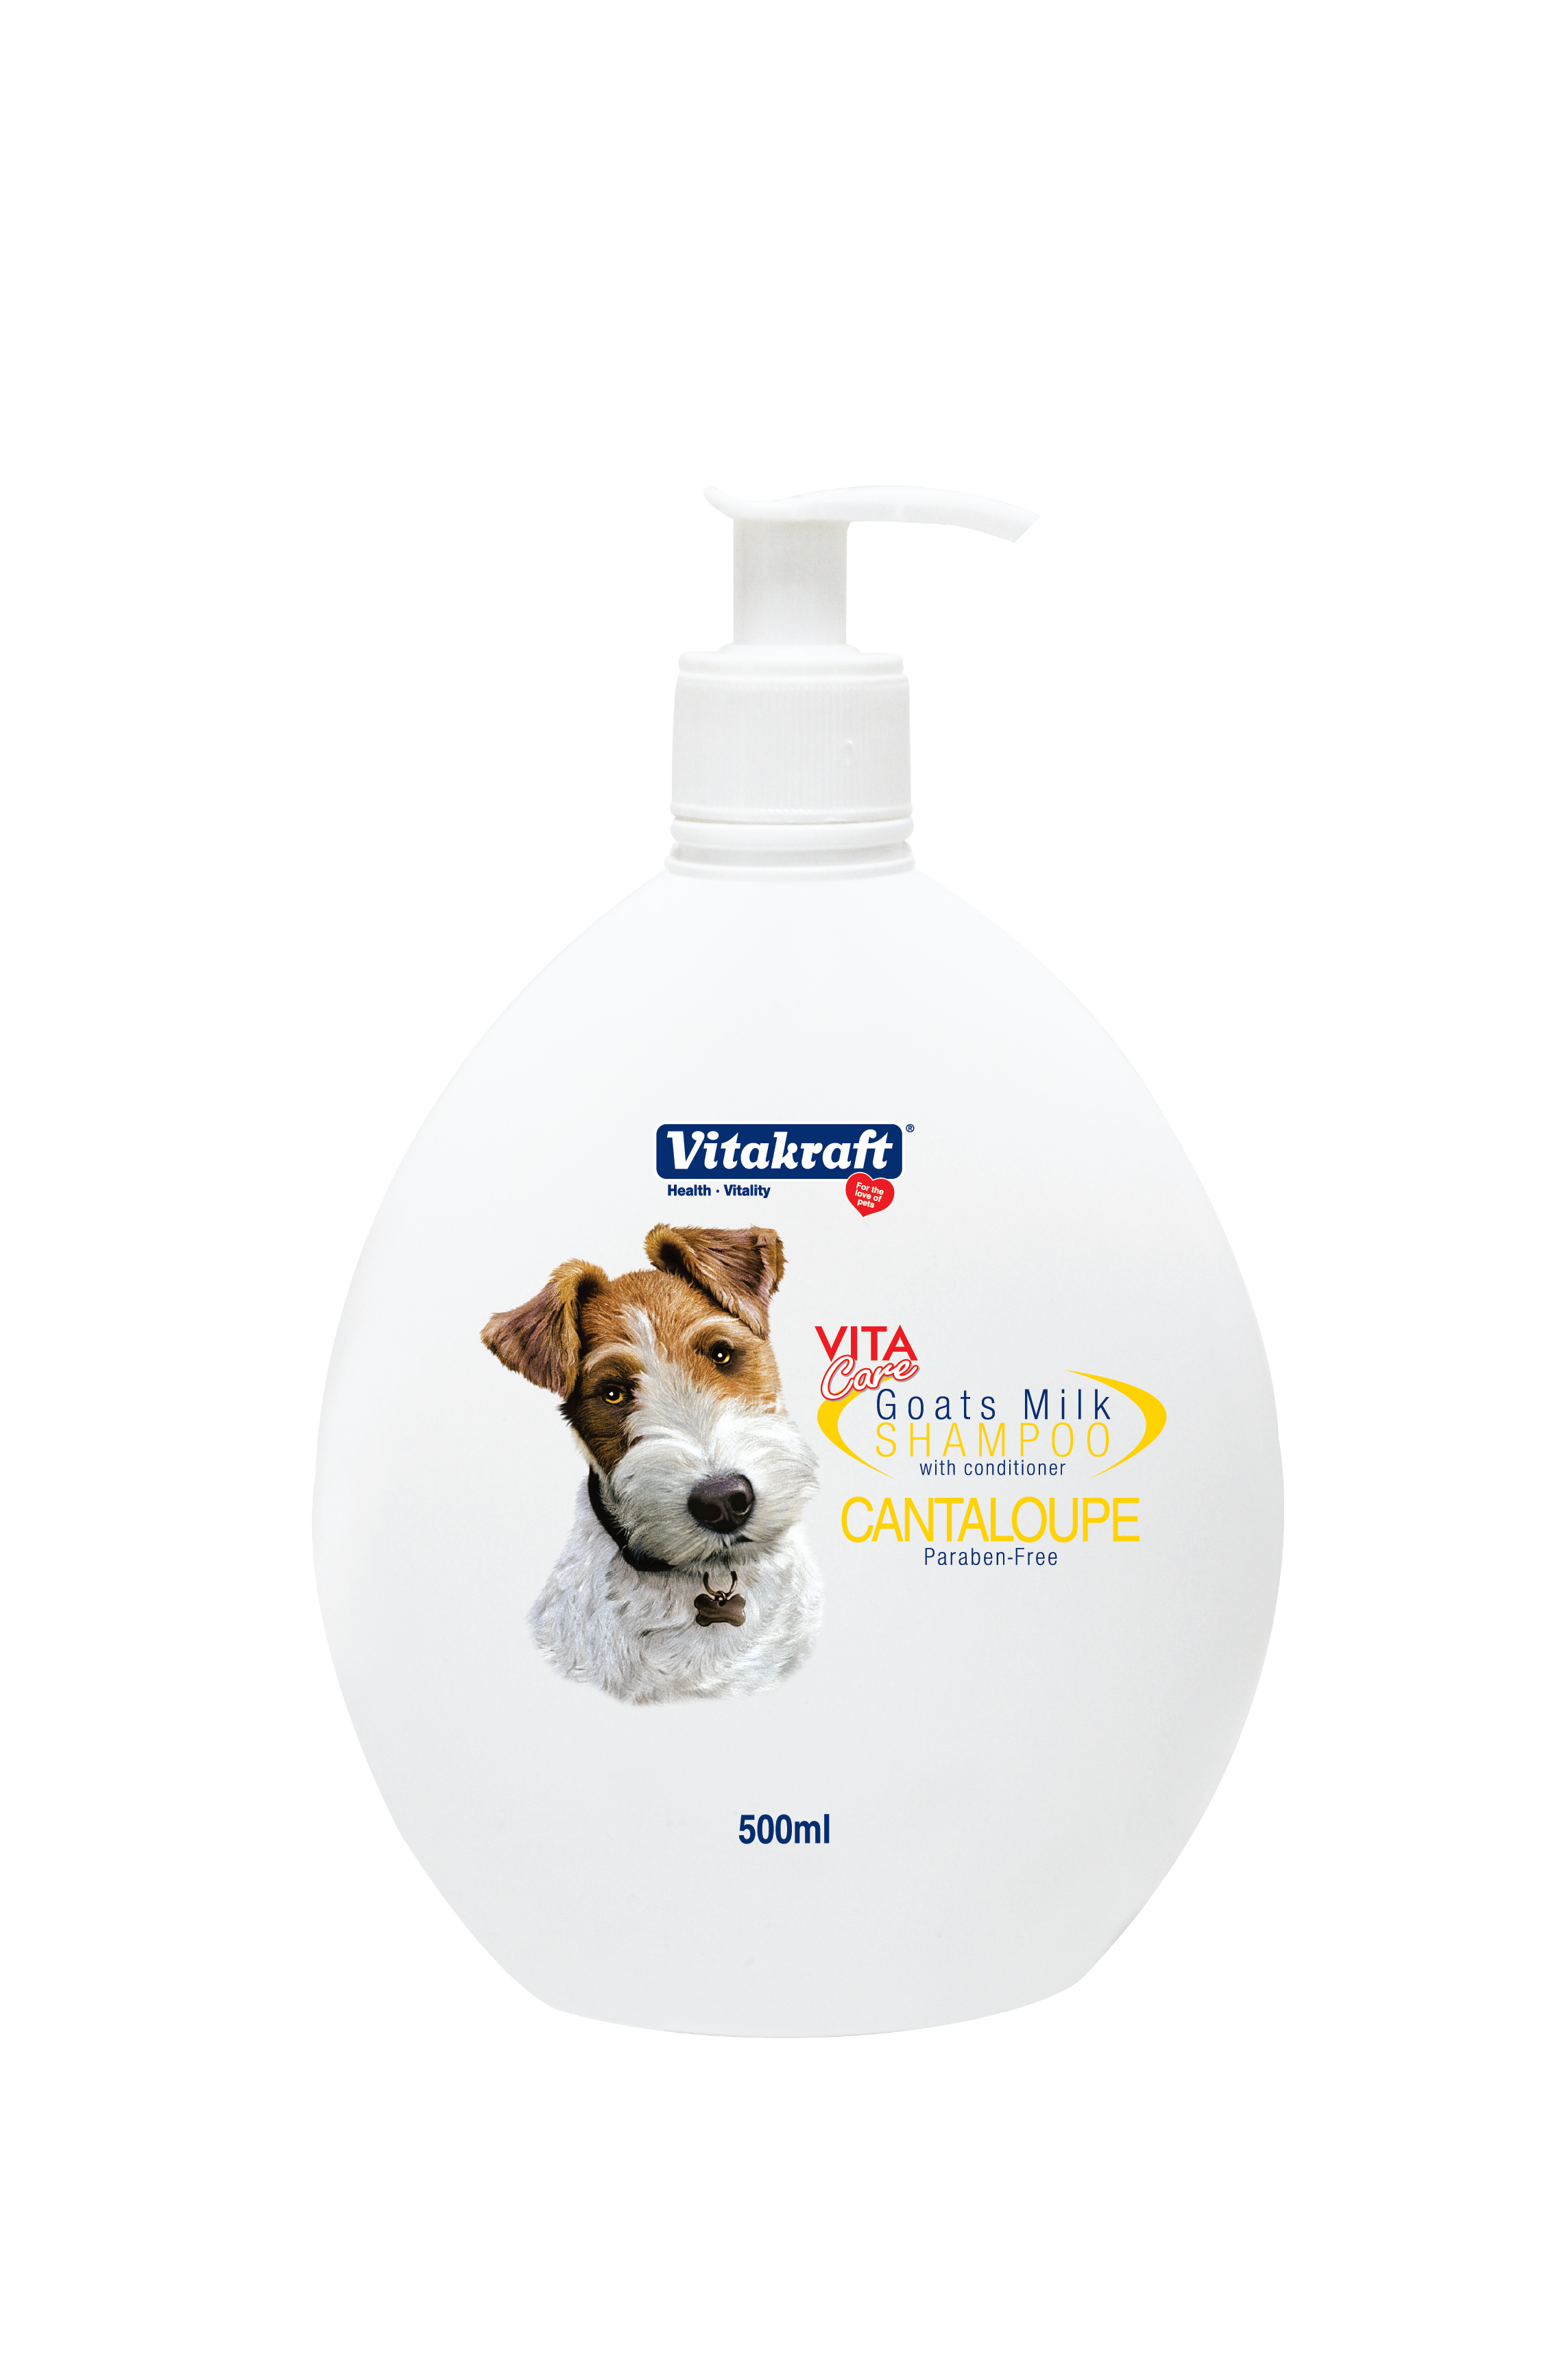 Vitakraft 2 in 1 Goat's Milk Shampoo for Dogs Cantaloupe Scented